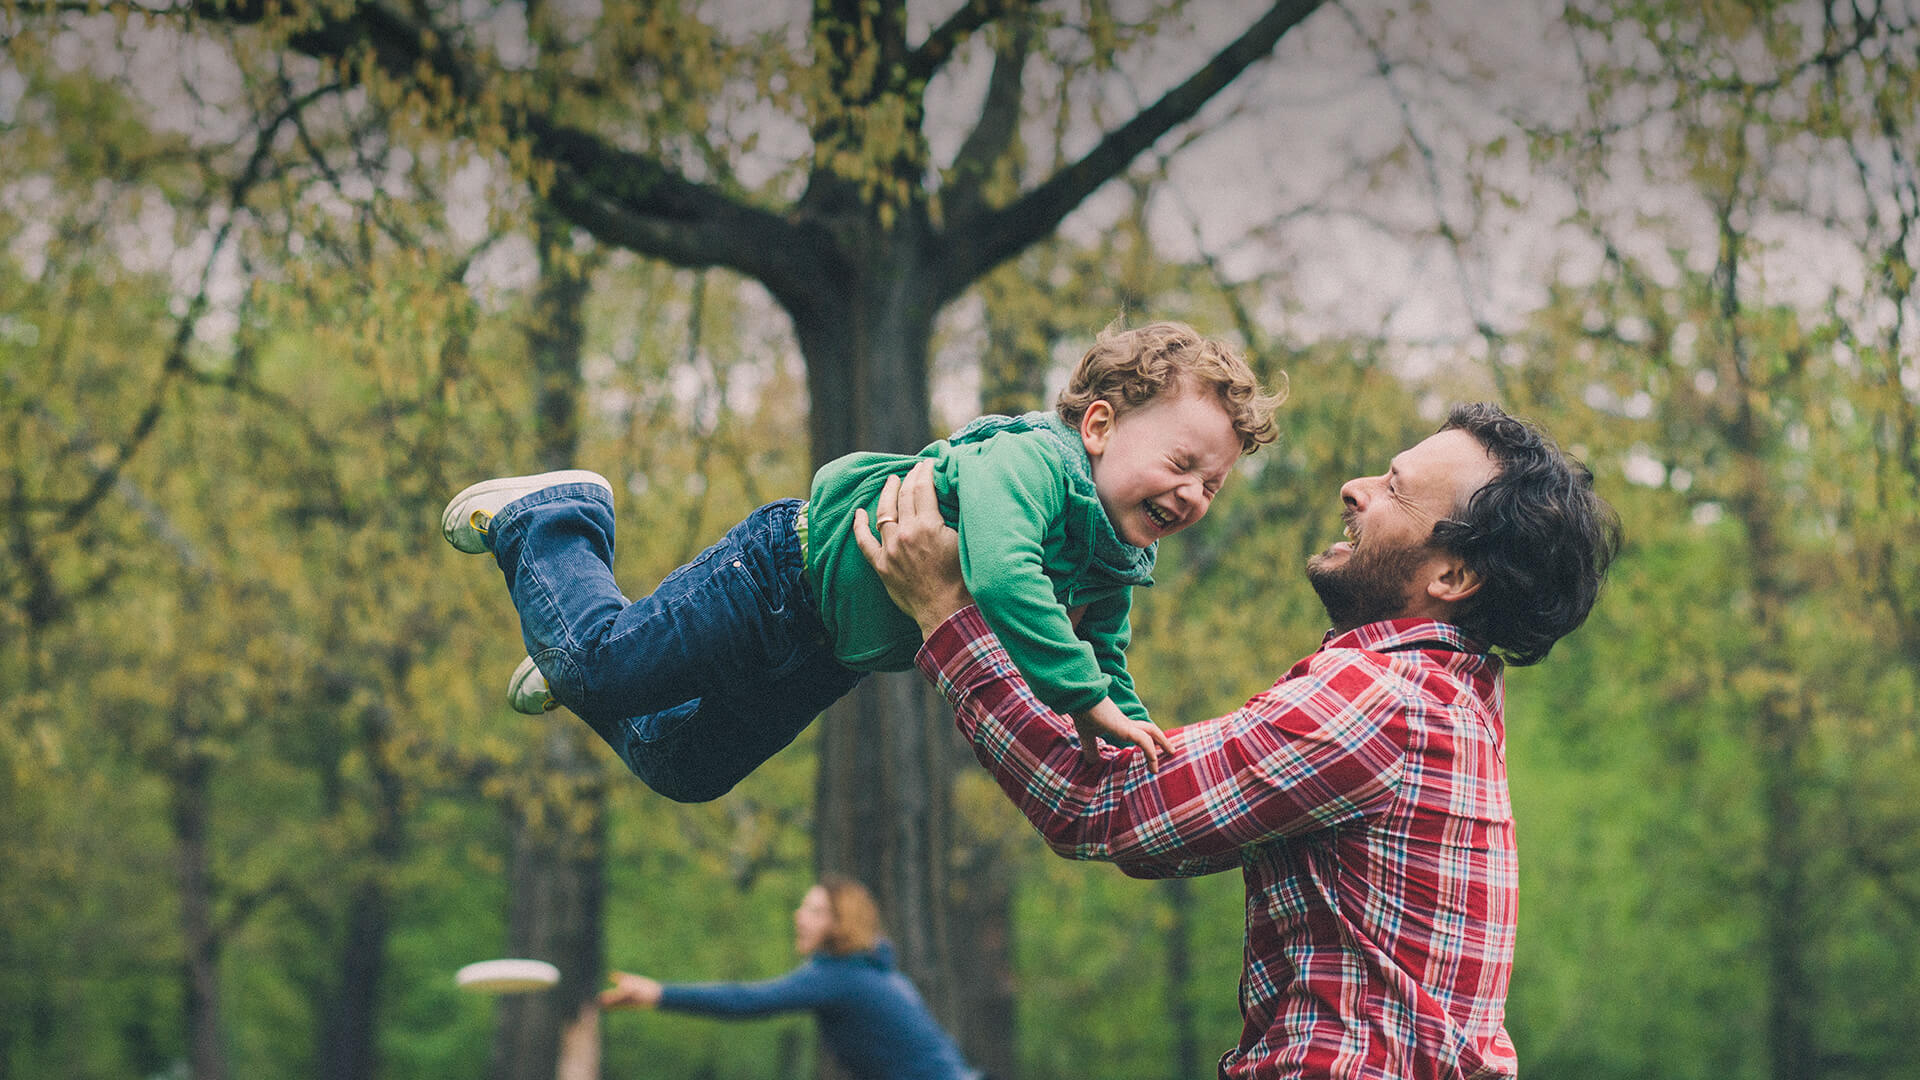 Single parent dating symbolized by a single dad who is tossing his little son in the air on a playground in UK